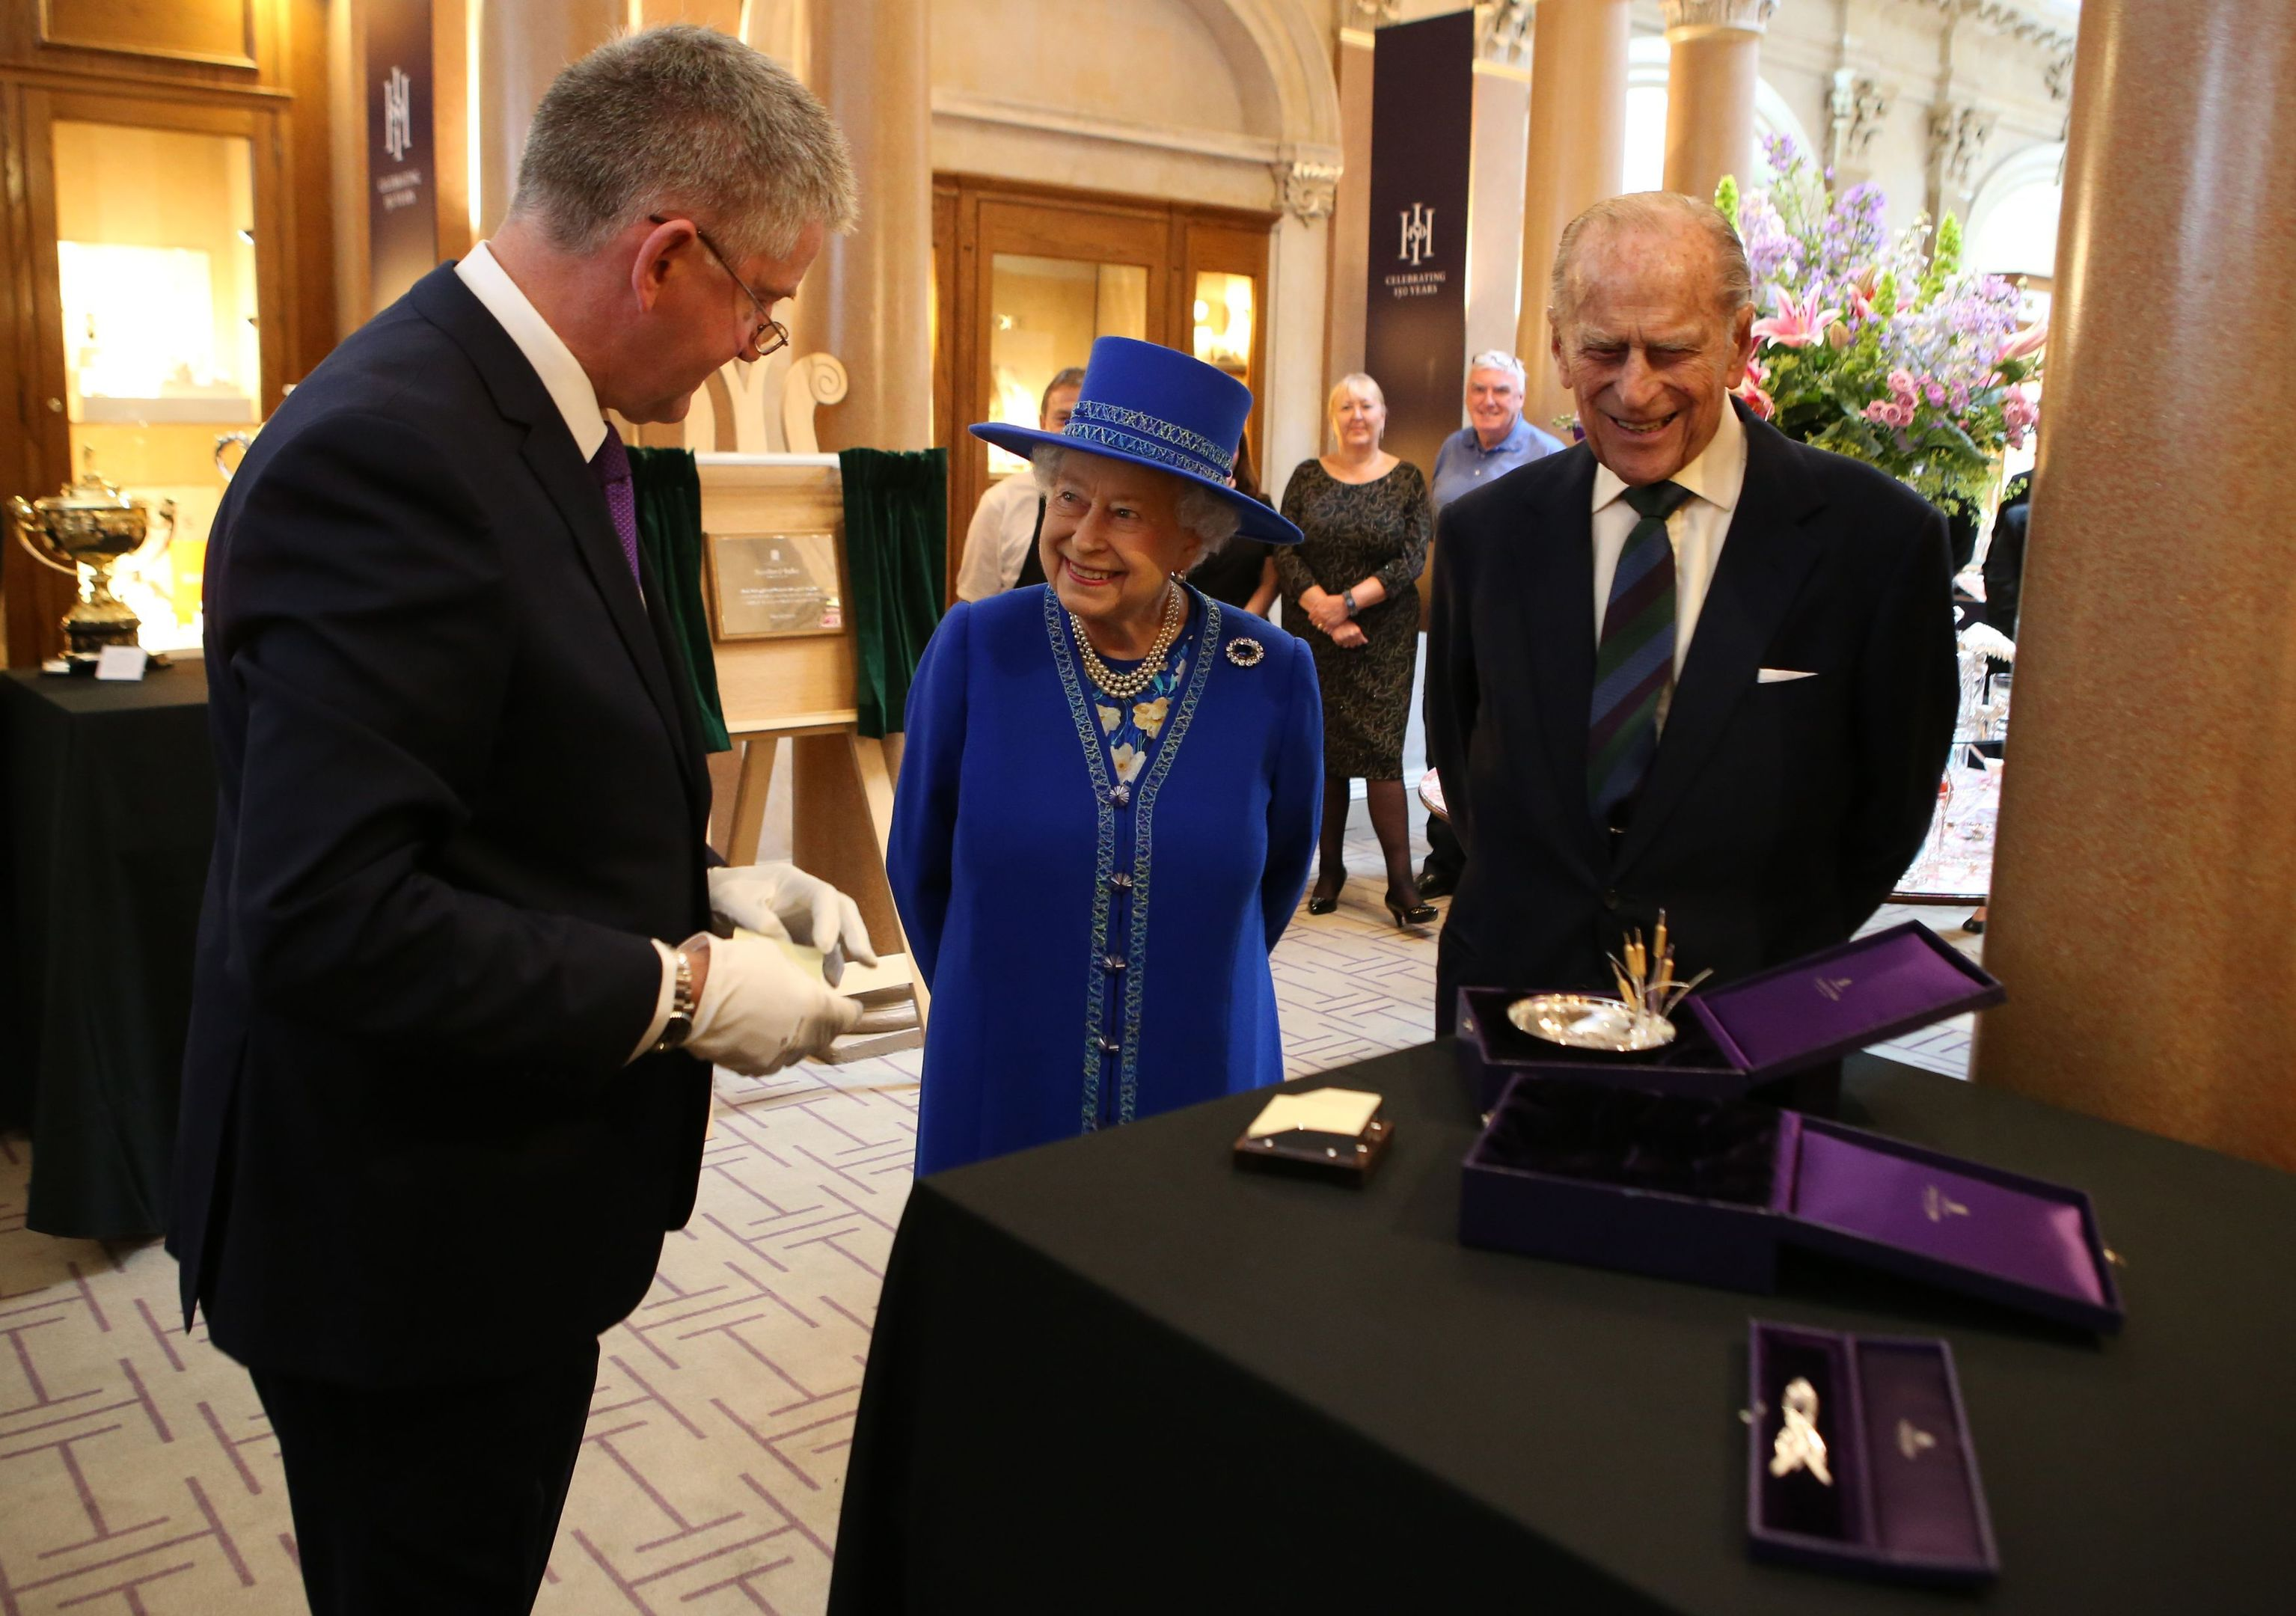 The Queen and the Duke of Edinburgh are presented with gifts by Chief Executive Stephen Paterson.